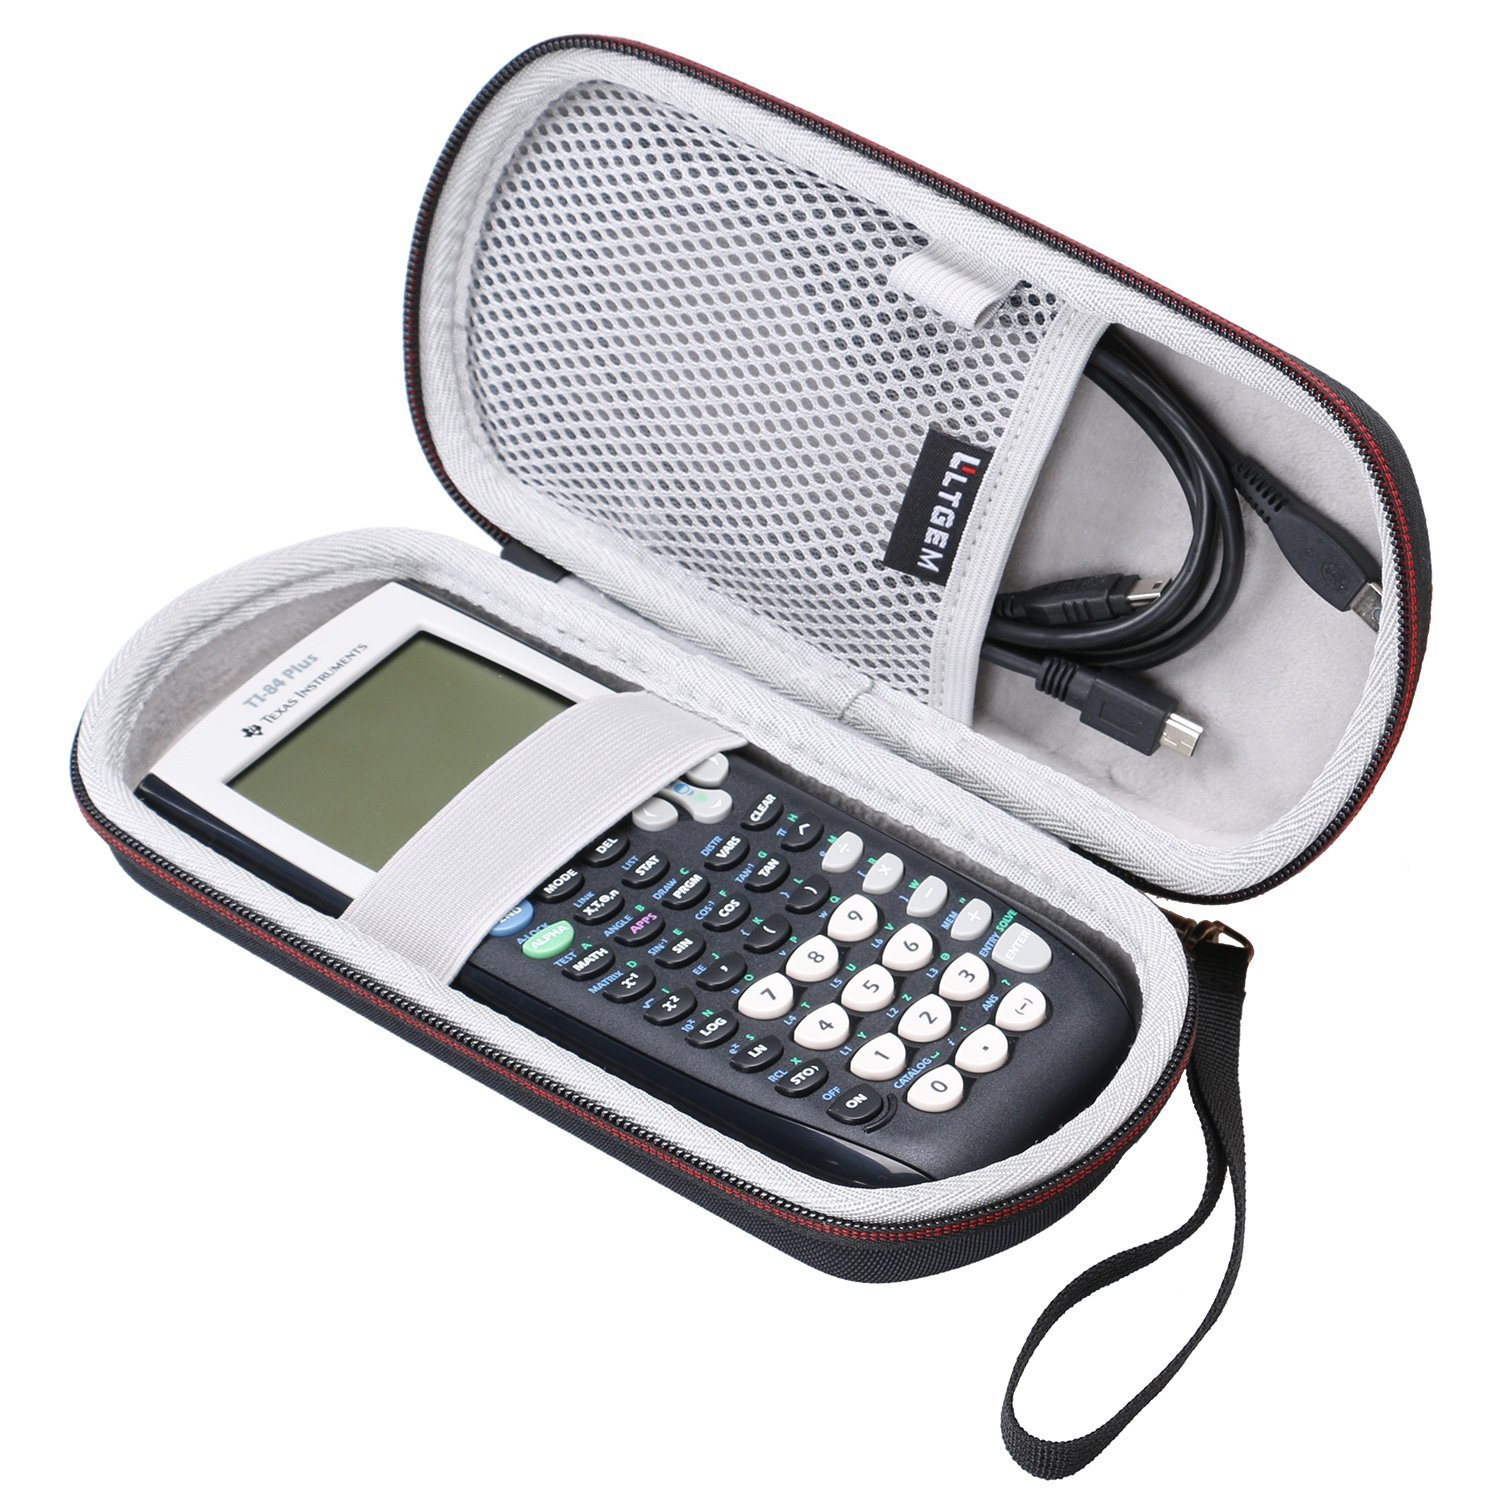 LTGEM Case for Texas Instruments TI-84, 89/83 / Plus / CE Graphics Calculator-Includes Mesh Pocket.(Hard and black)